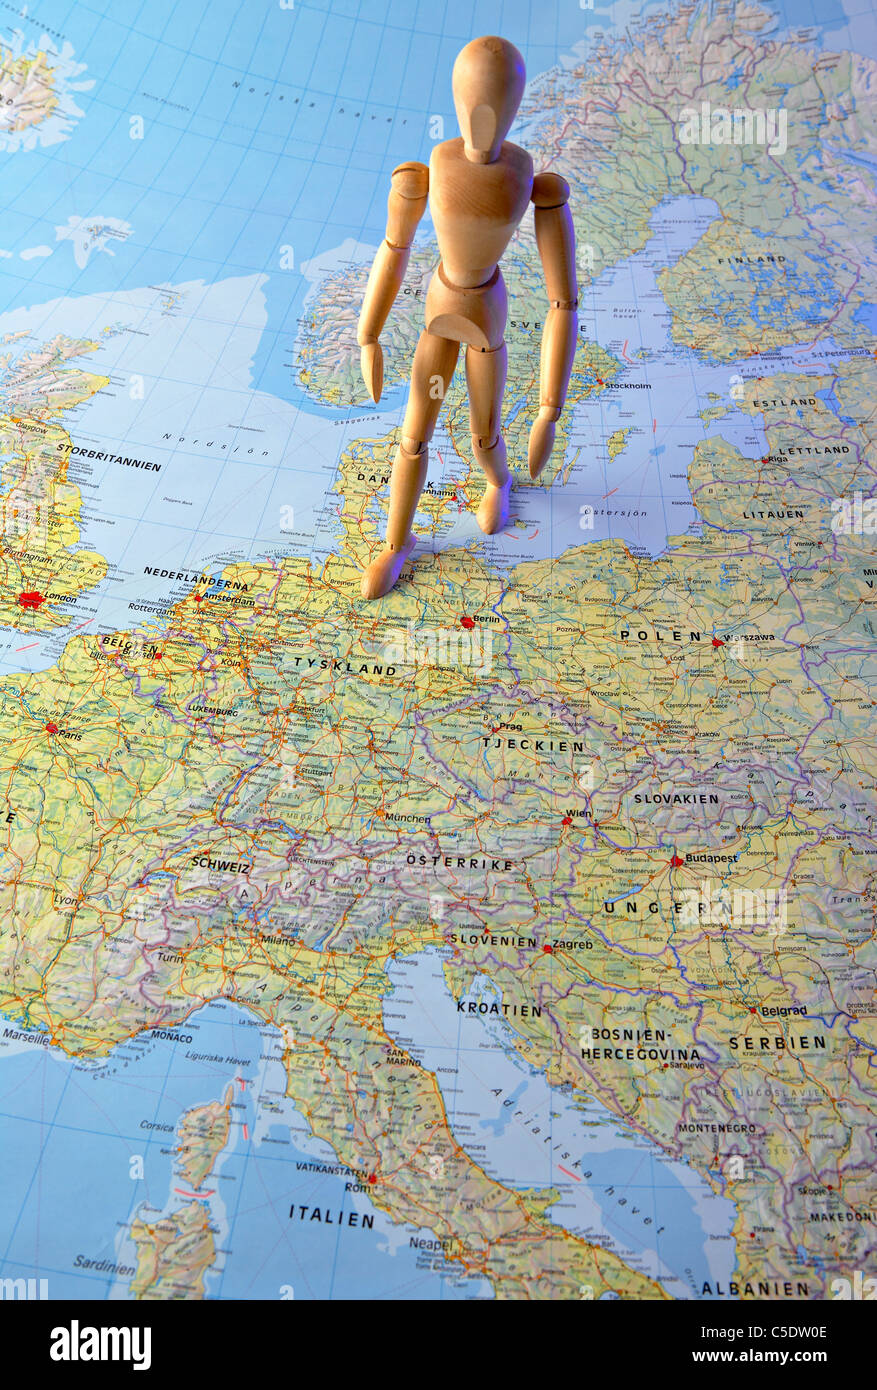 Close-up of a mannequin standing on the map - Stock Image